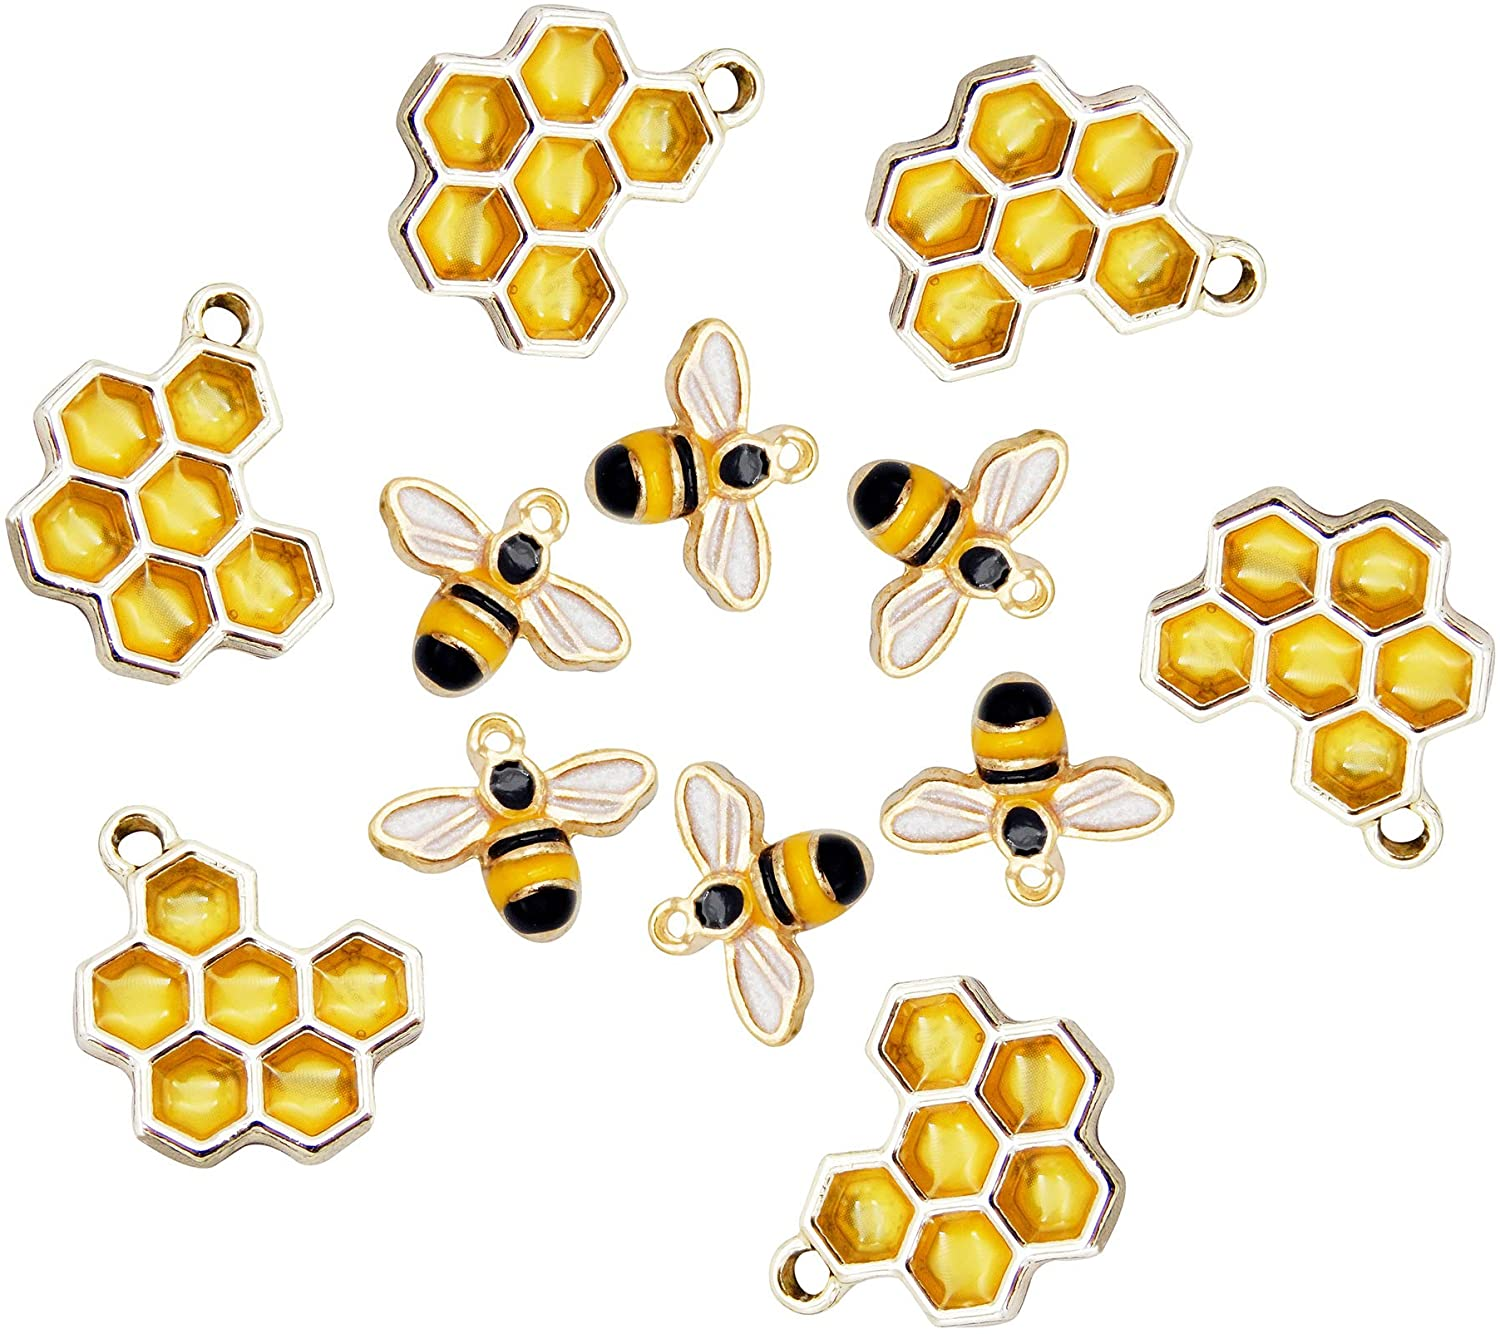 40pcs Honeycomb Bee New sales Enamel All items free shipping Charms Making Wh Bracelet for Jewelry